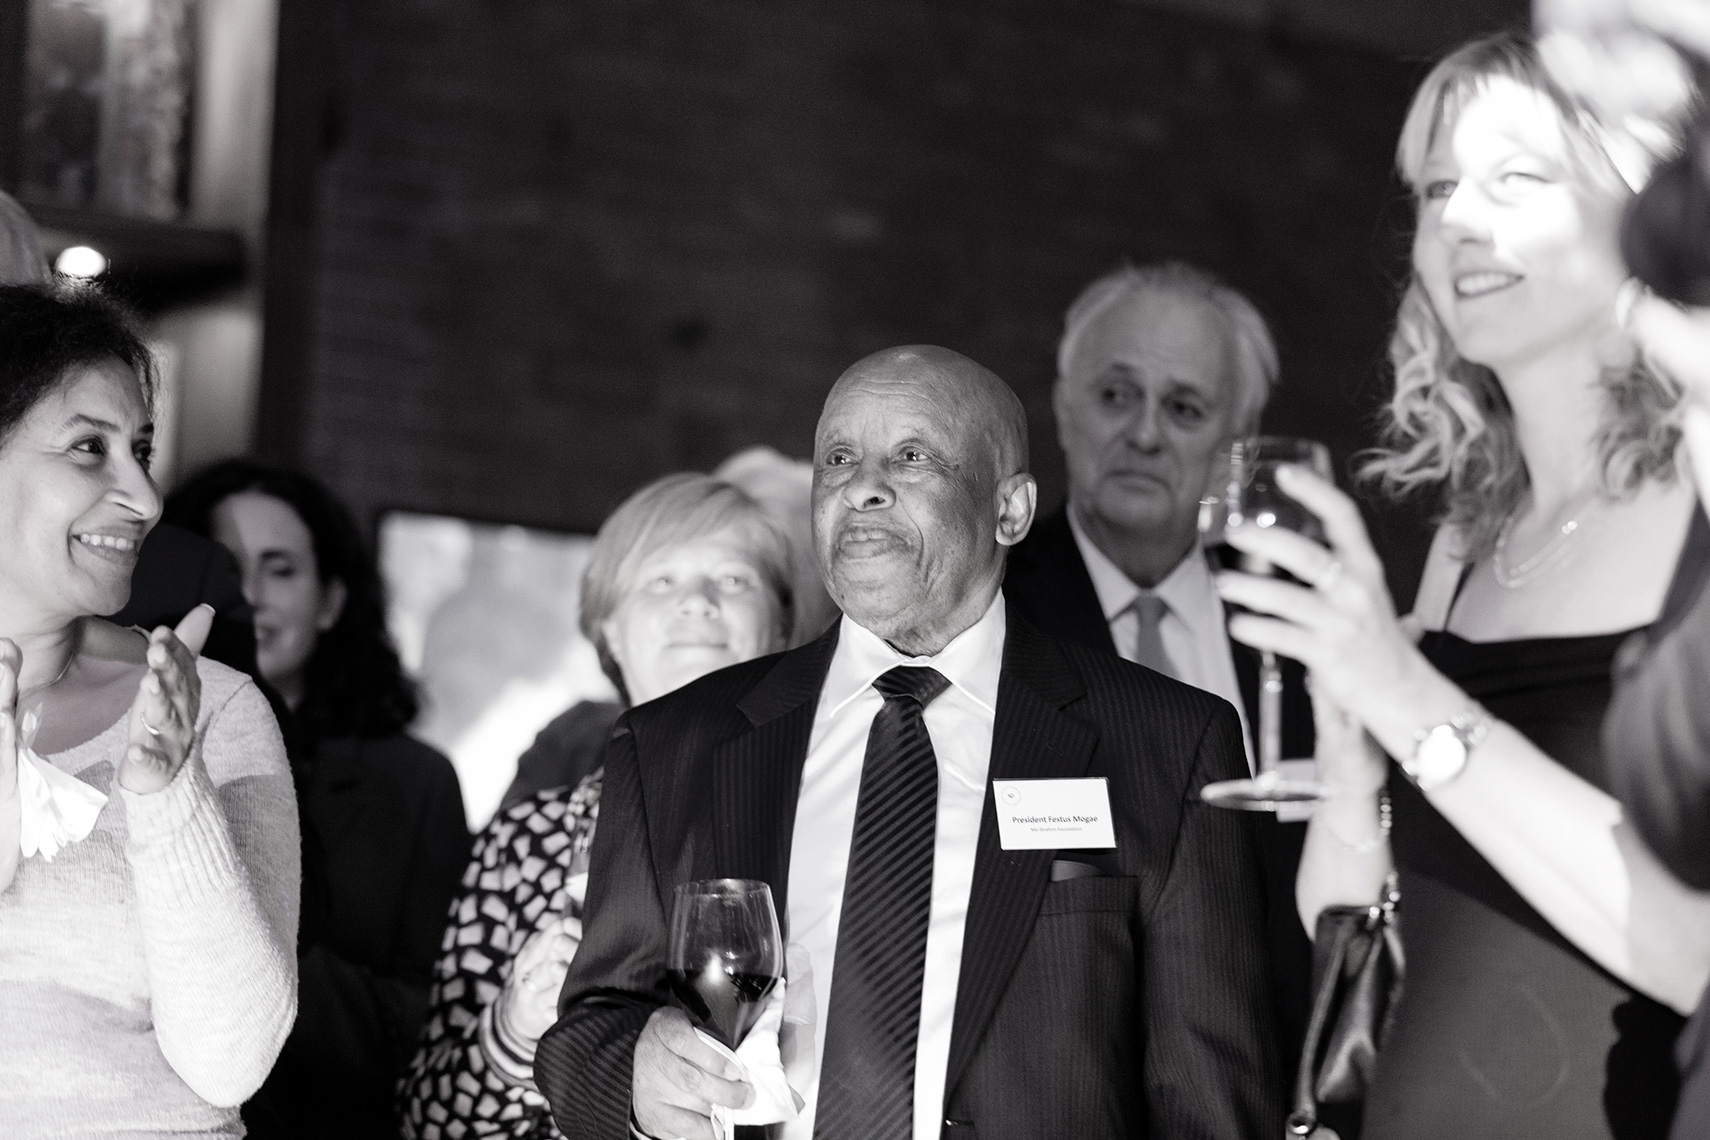 President Festus Mogae smiling and standing with a crowd watching the celebrations of a gala event in London